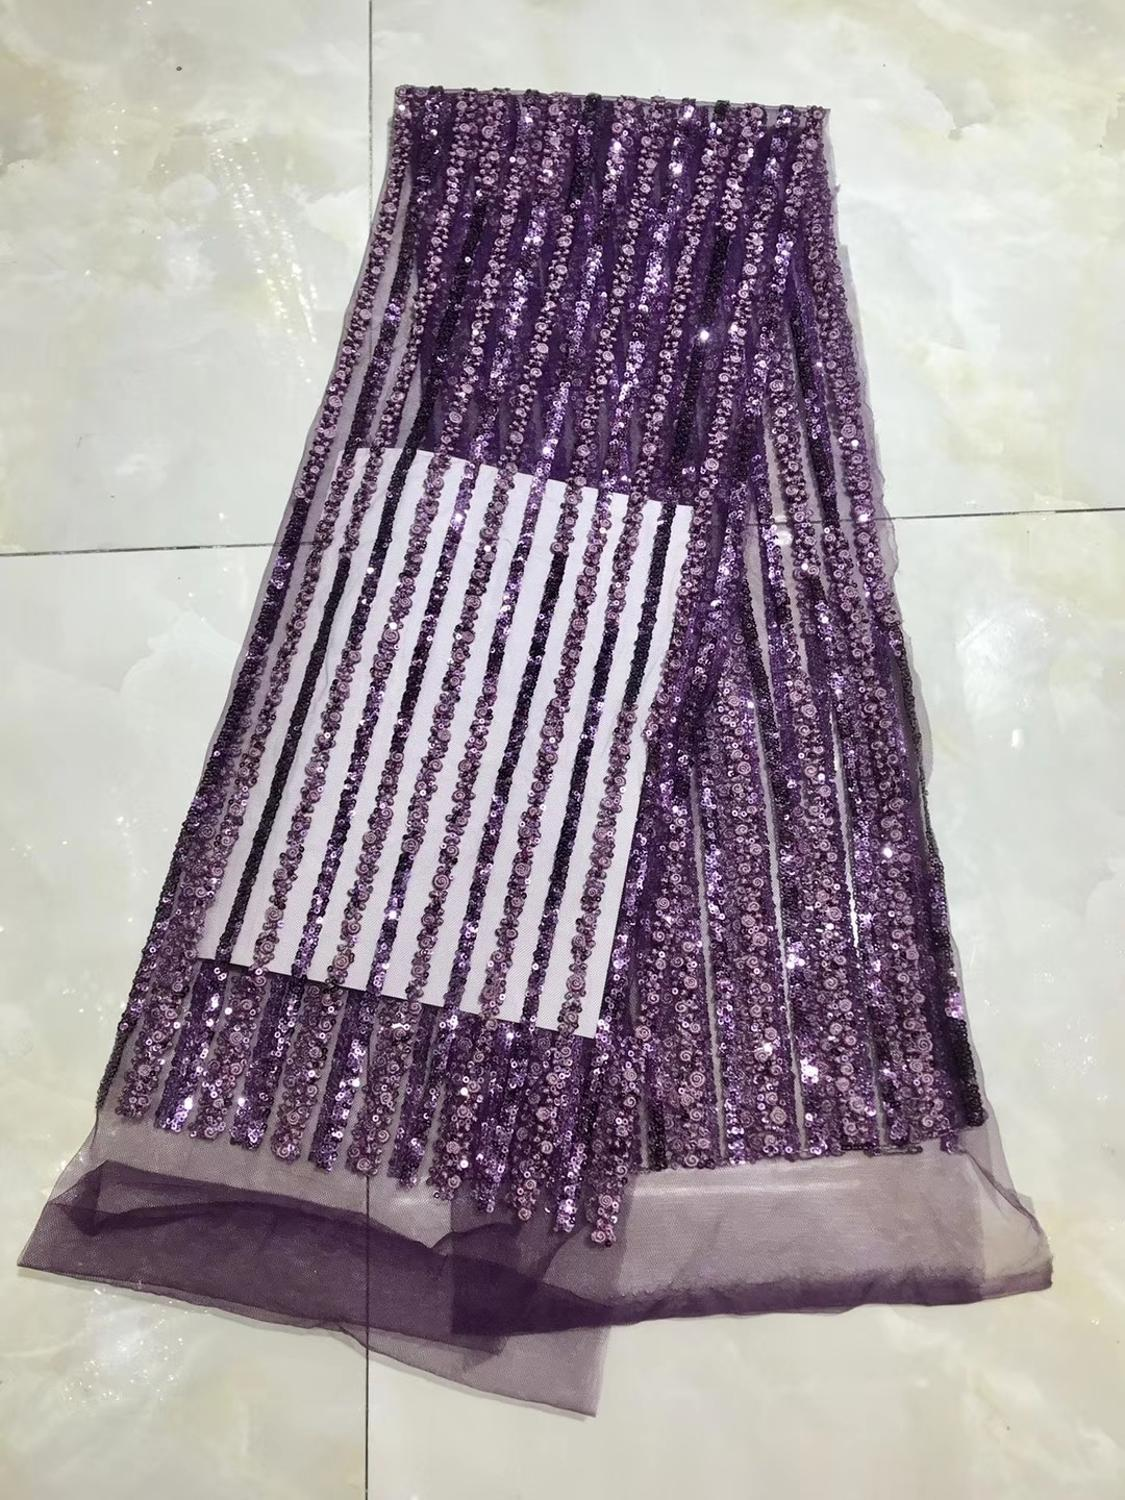 Sequin Lace 2020 High Quality Nigerian Lace Fabric Latest Lace Fabric Luxury Sequin Purple Lace Fabric For Wedding Dresse